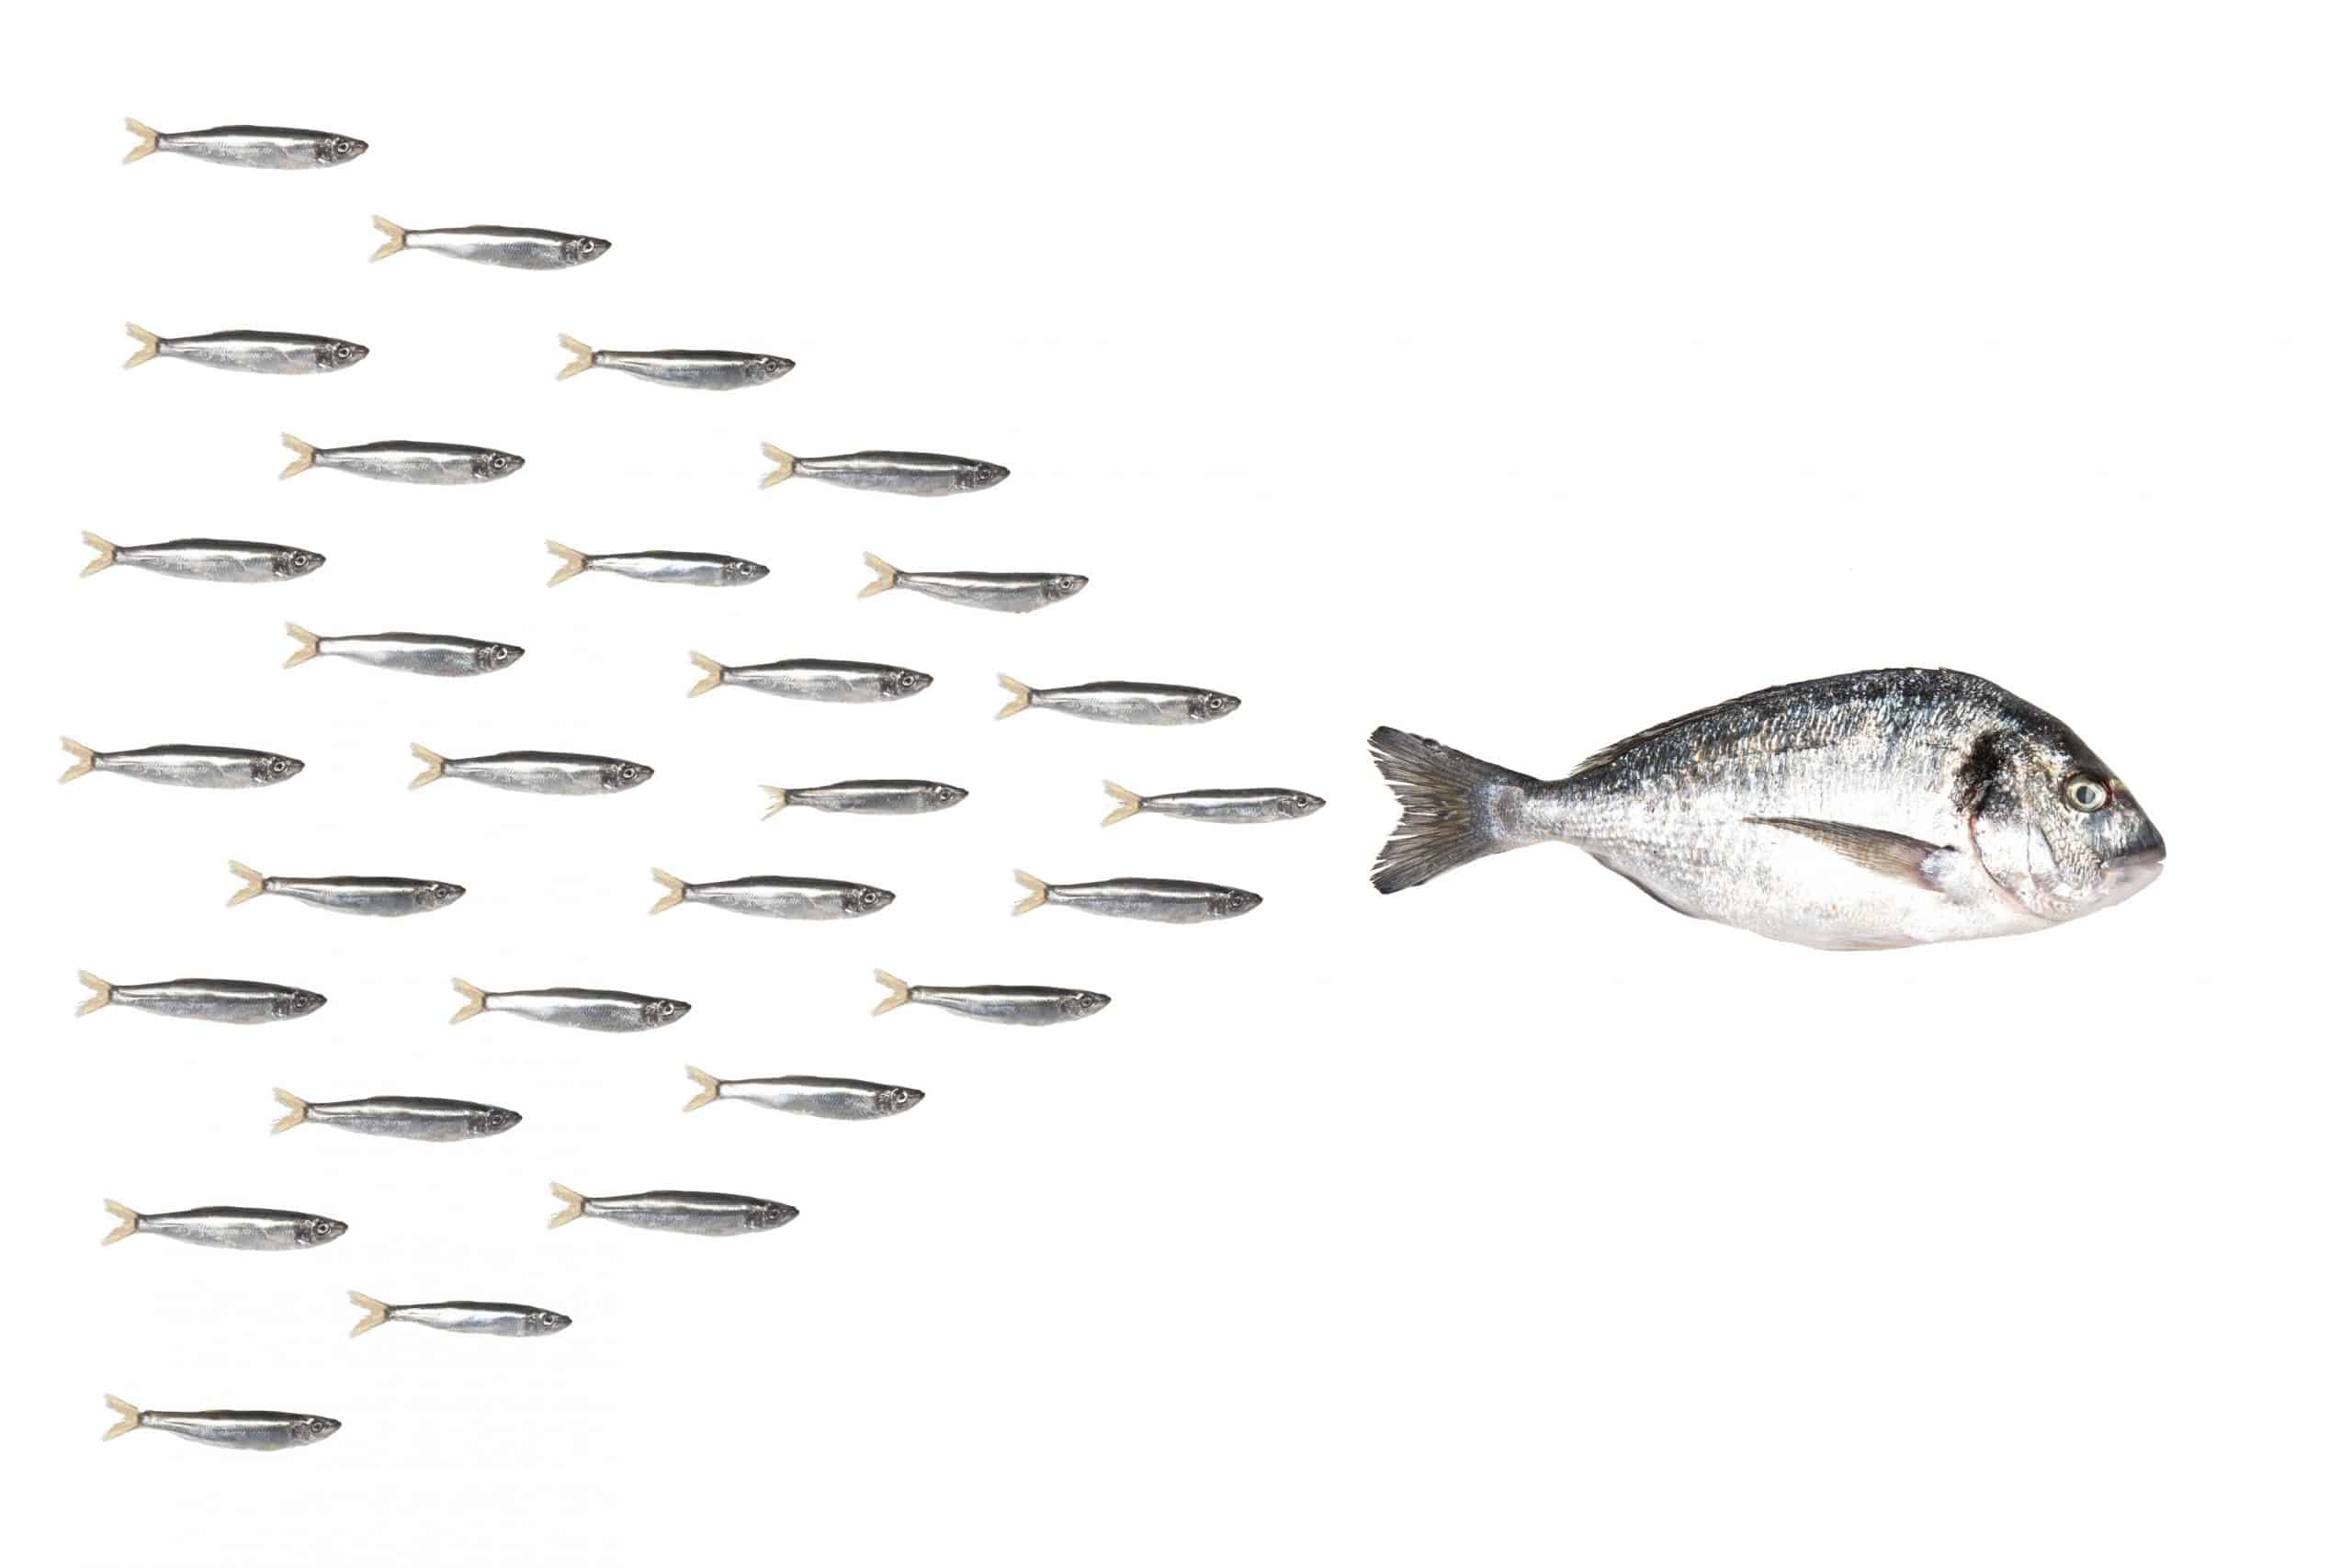 Fishes in group leadership concept.